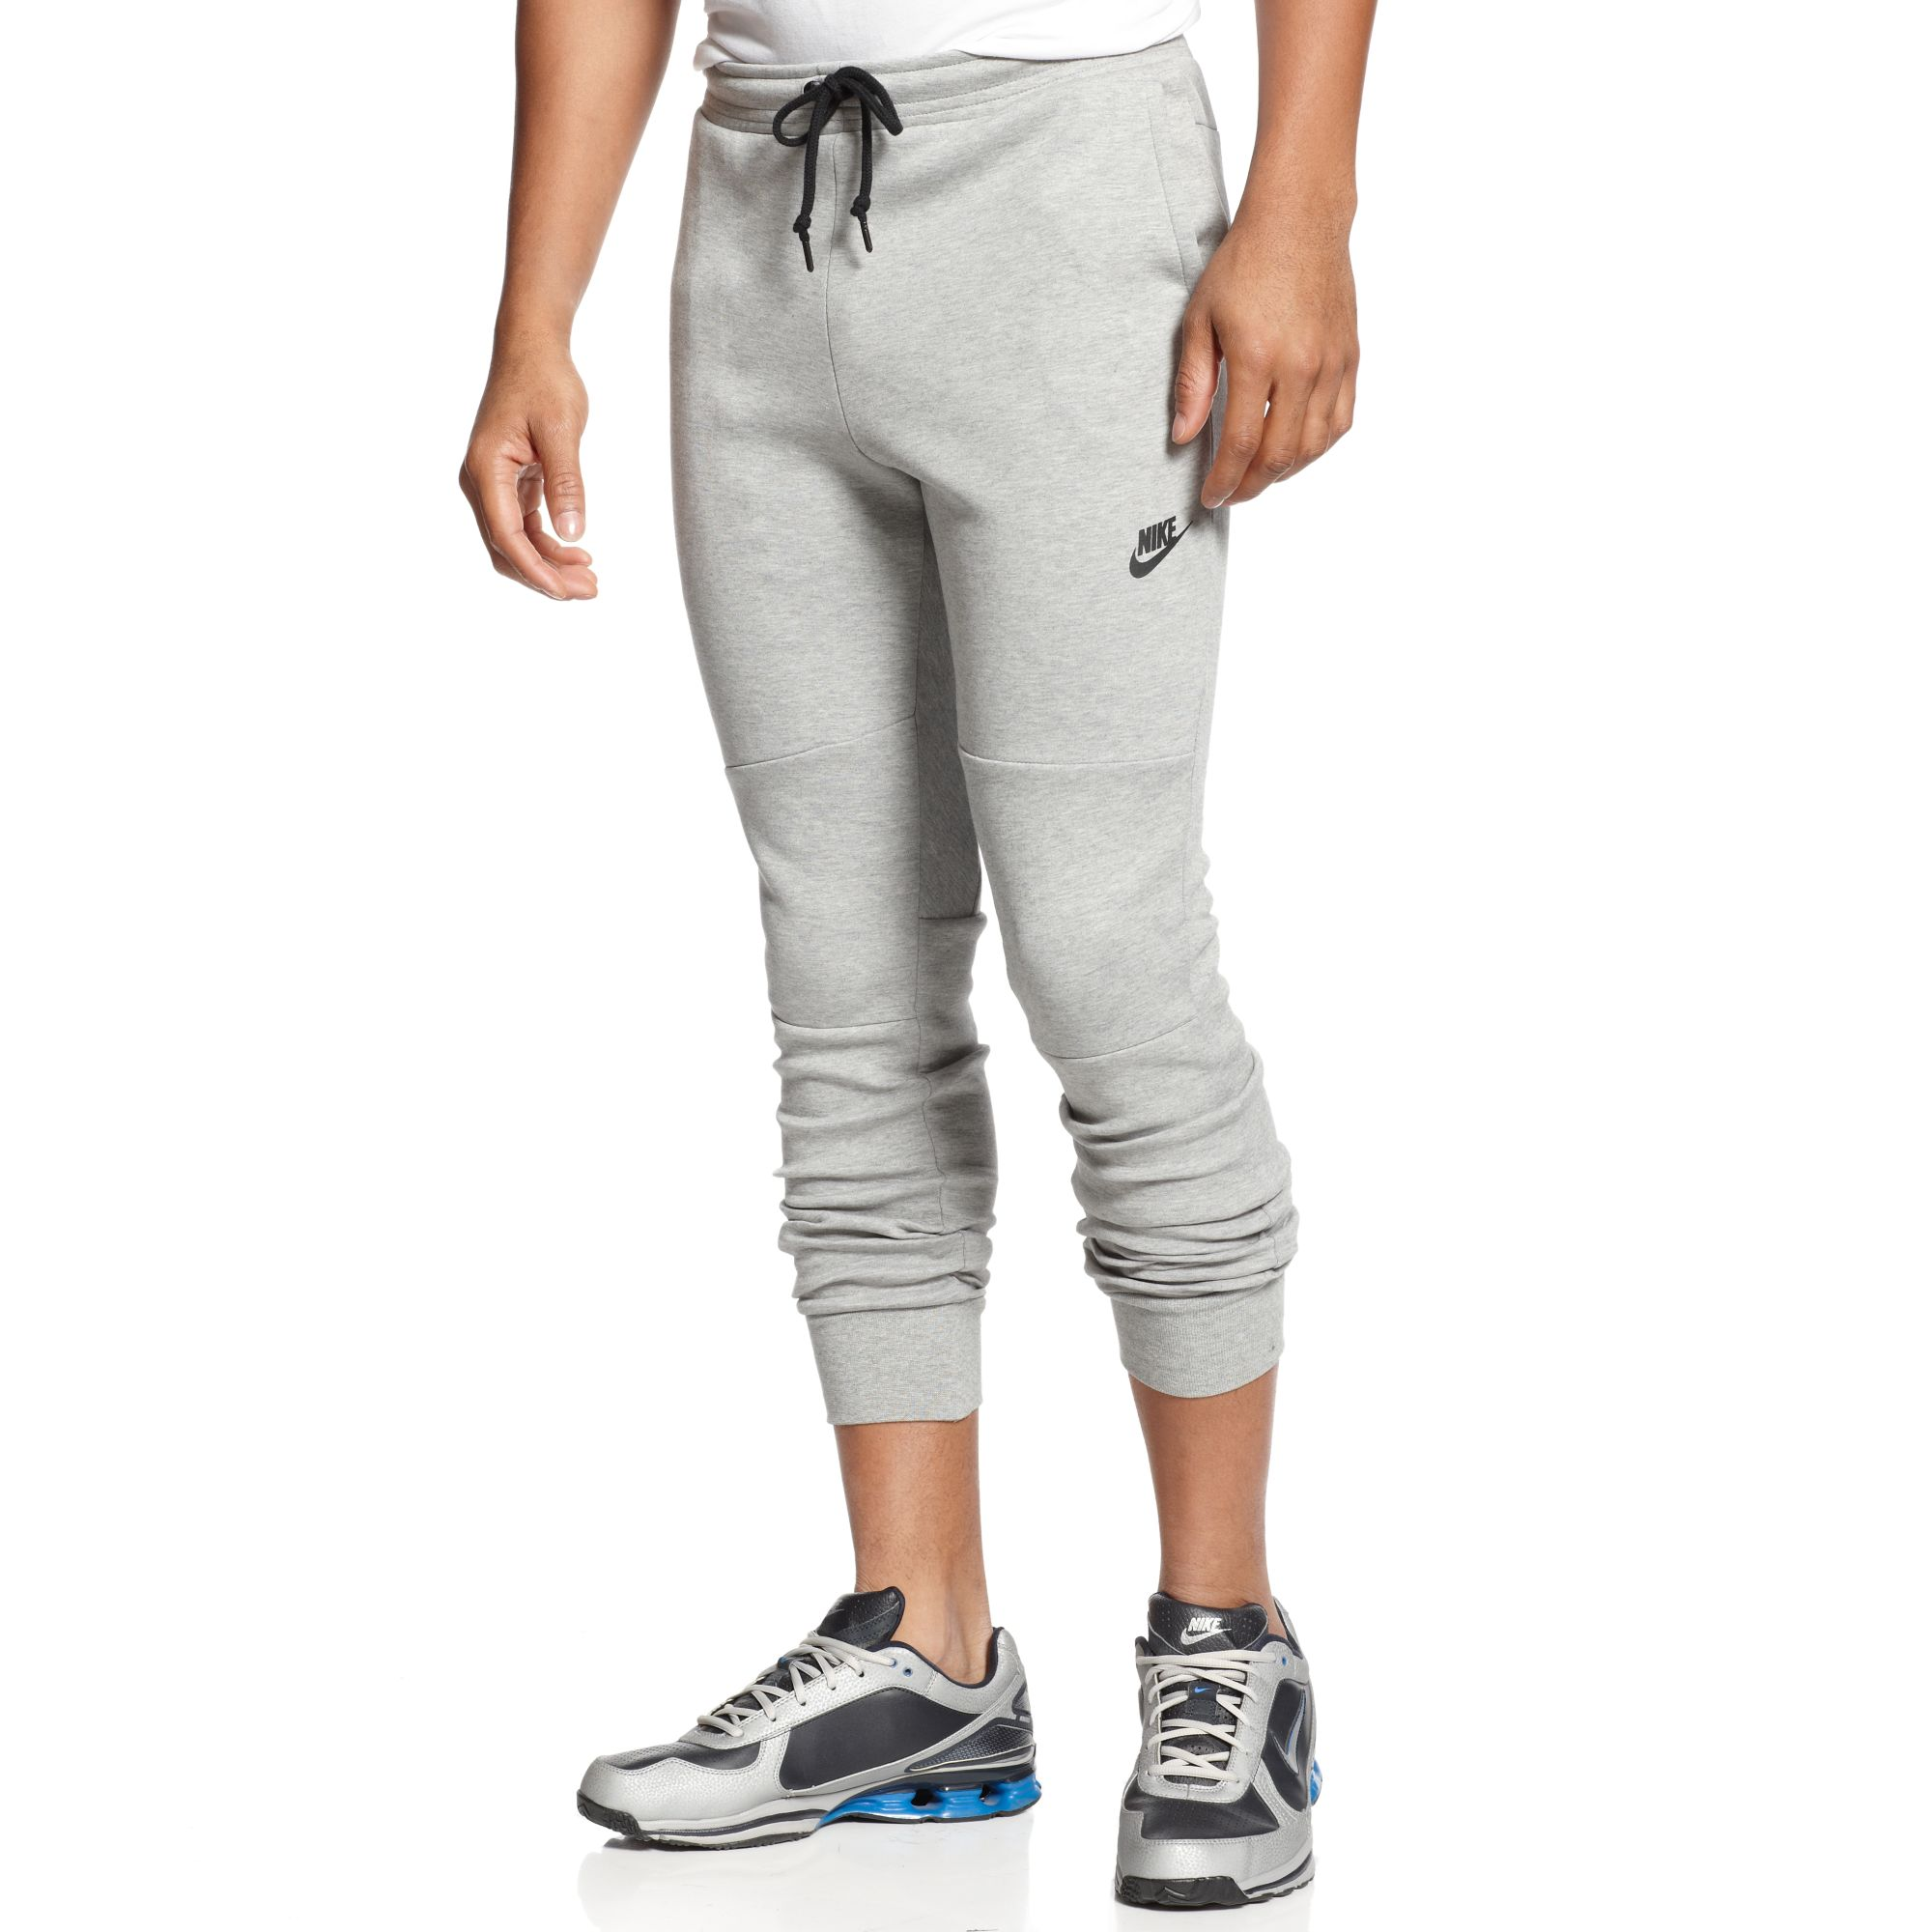 Beautiful  Womens Black Pants Pants Nike Tech Fleece Carbon ColorGray Pants